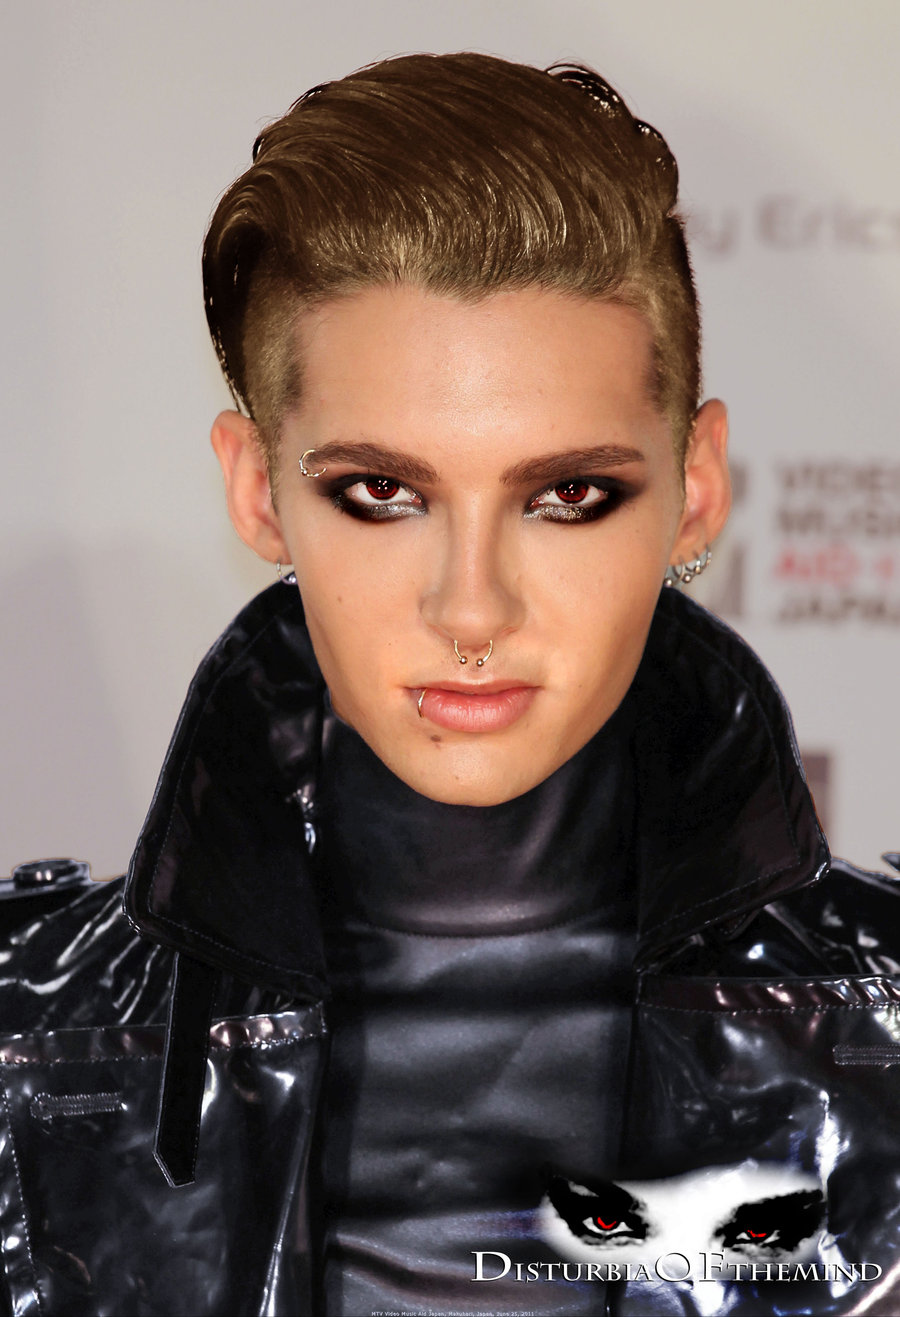 Bill kaulitz page 5 disturbiaofthemind old photomanipulations altavistaventures